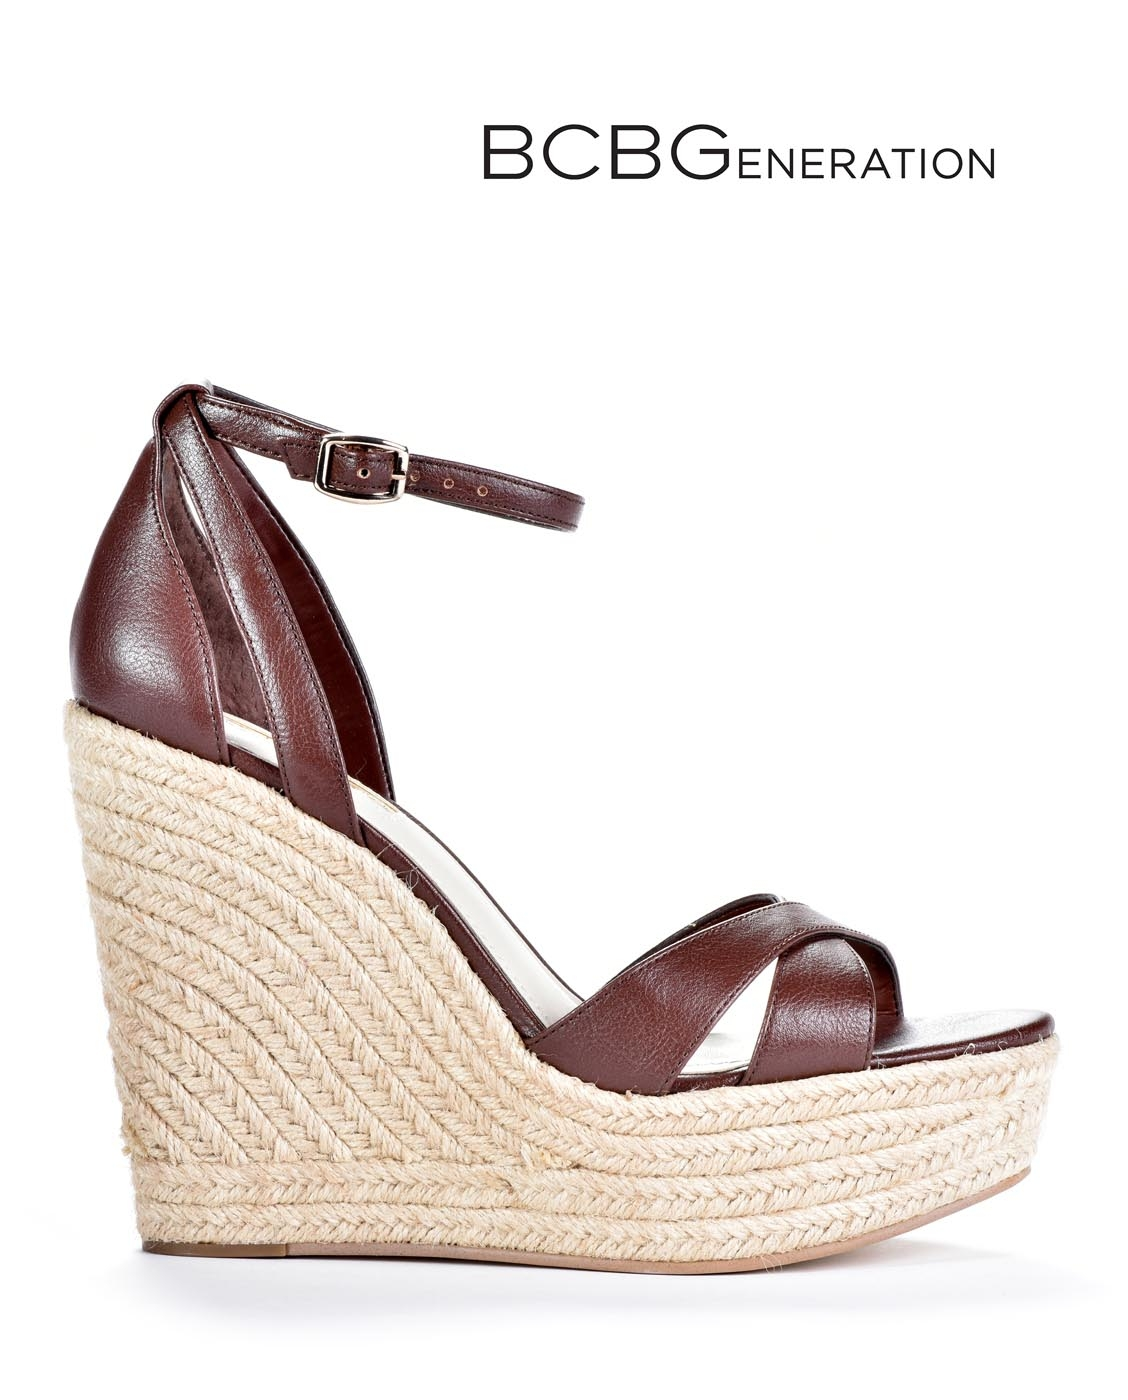 7bf5f50b8645 NEW BCBGENERATION WOMEN S HOLLY WEDGE OPEN TOE SANDALS BG-HOLLY